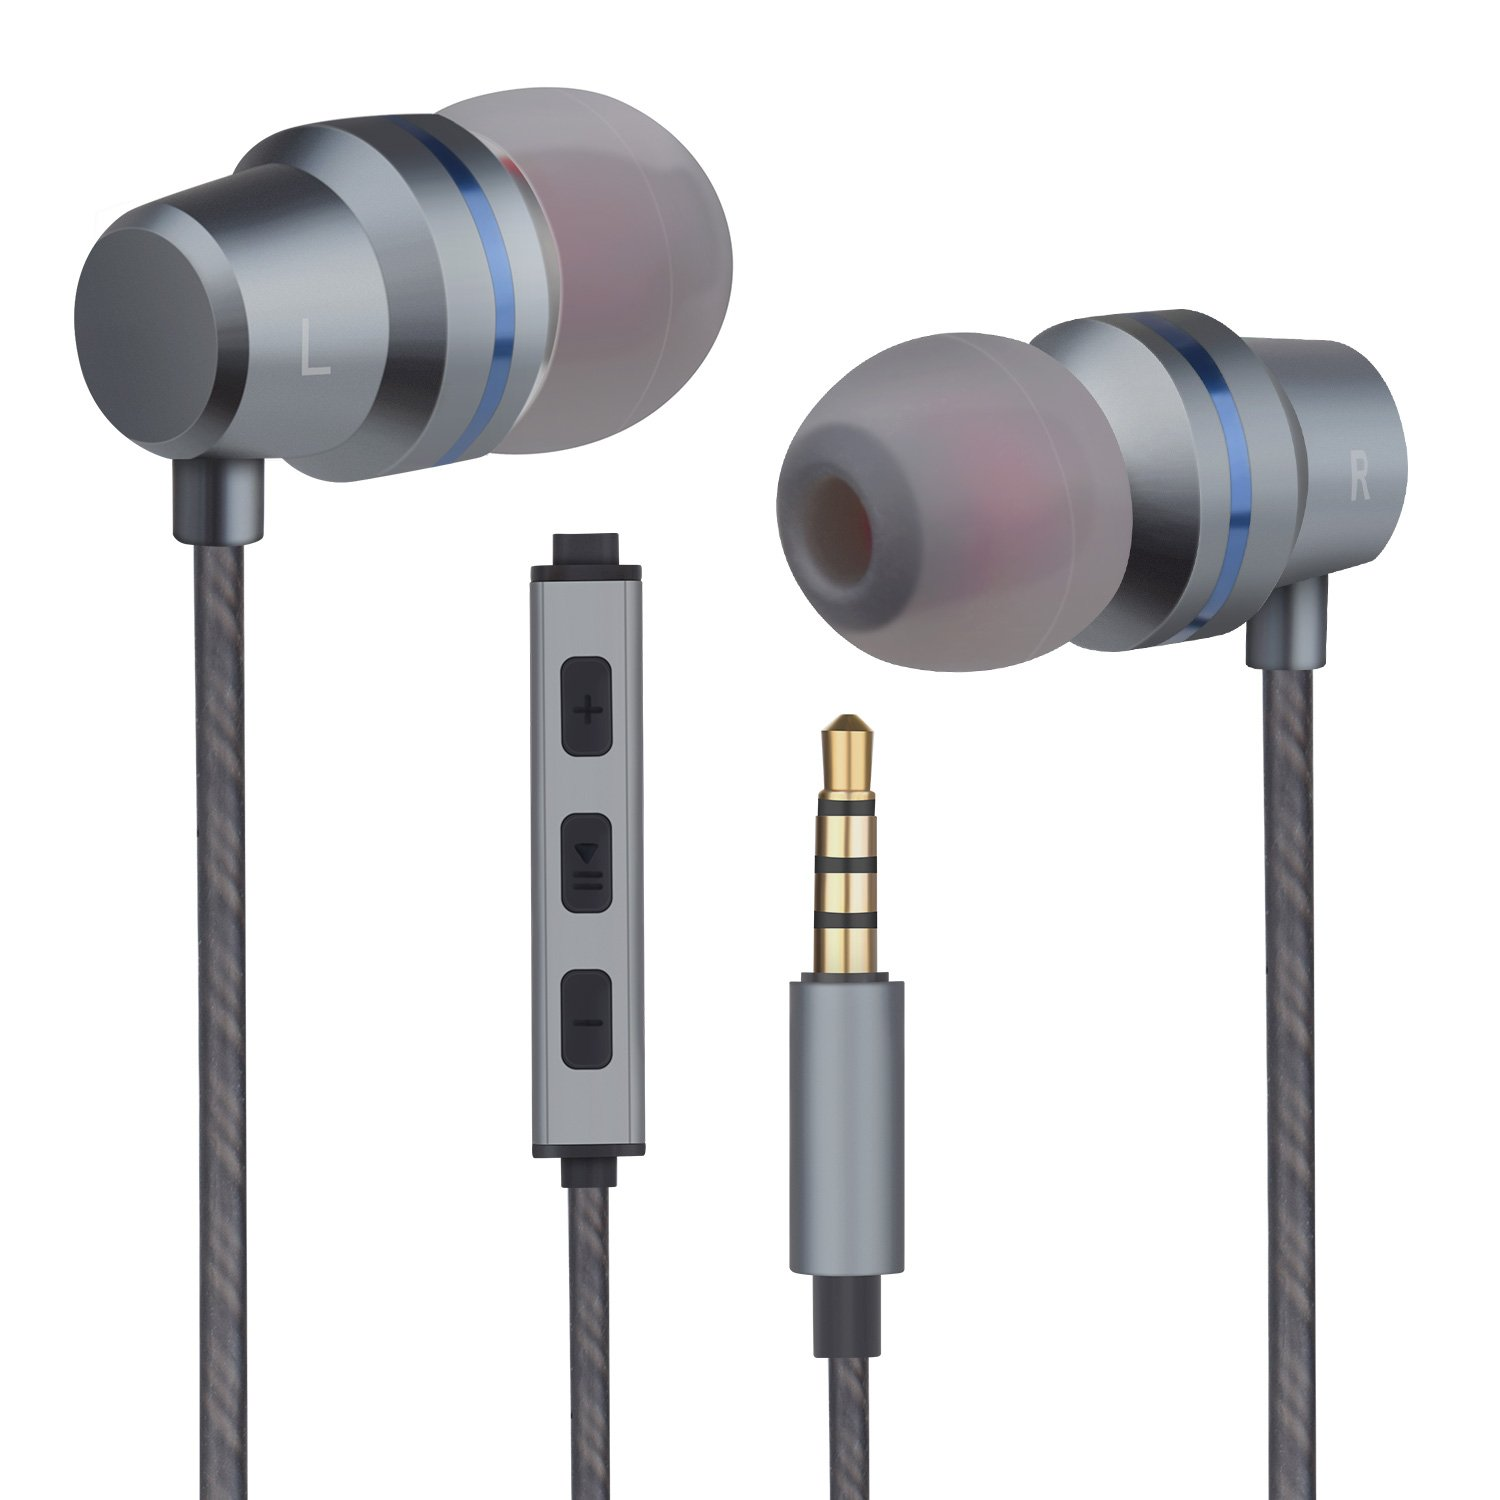 Earbuds Headphones with Microphone Mic Stereo Volume Control Wired Earphones In-Ear Noise-Isolating Ear Buds for iPhone iPod iPad Samsung Android Galaxy LG HTC Mp3 Players Tablet Laptop 3.5mm Audio